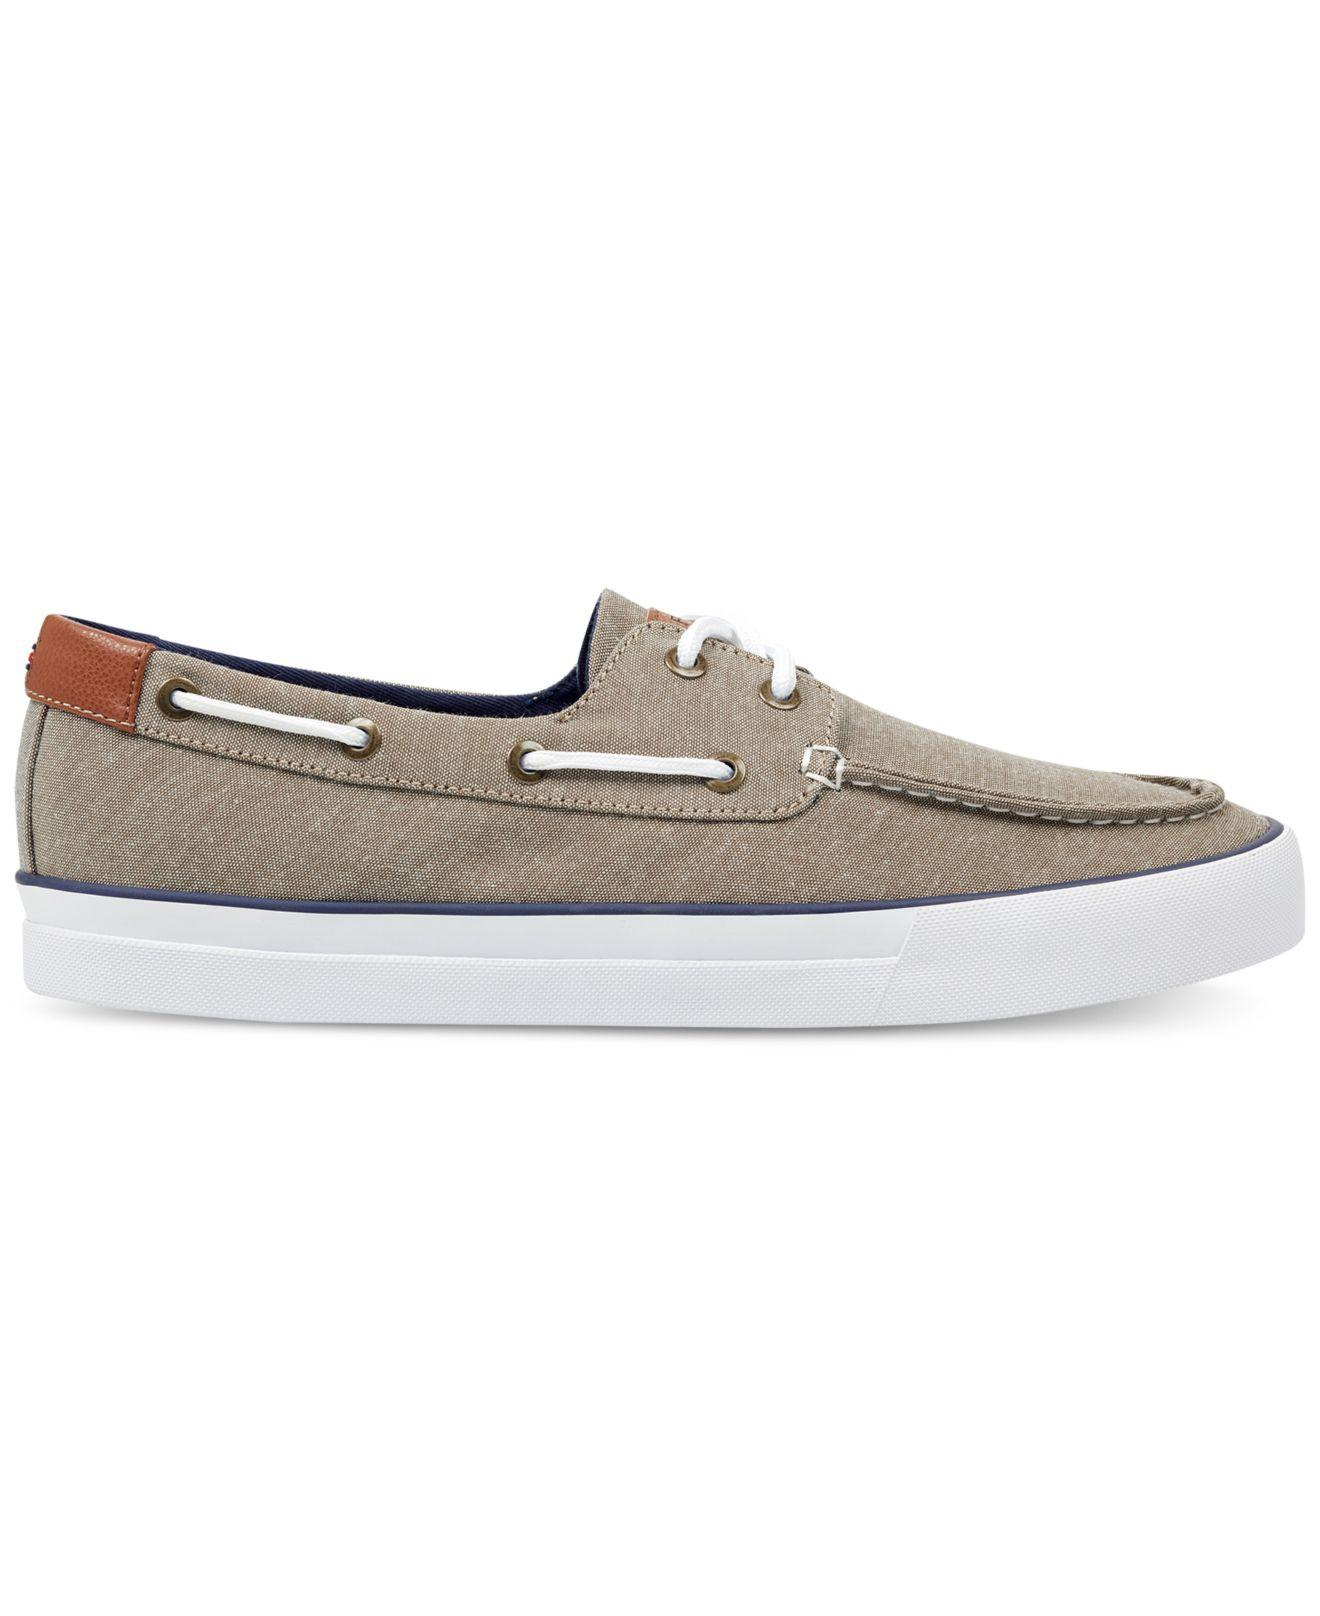 a3945d7ddd241c Lyst - Tommy Hilfiger Petes Boat Shoes in Natural for Men